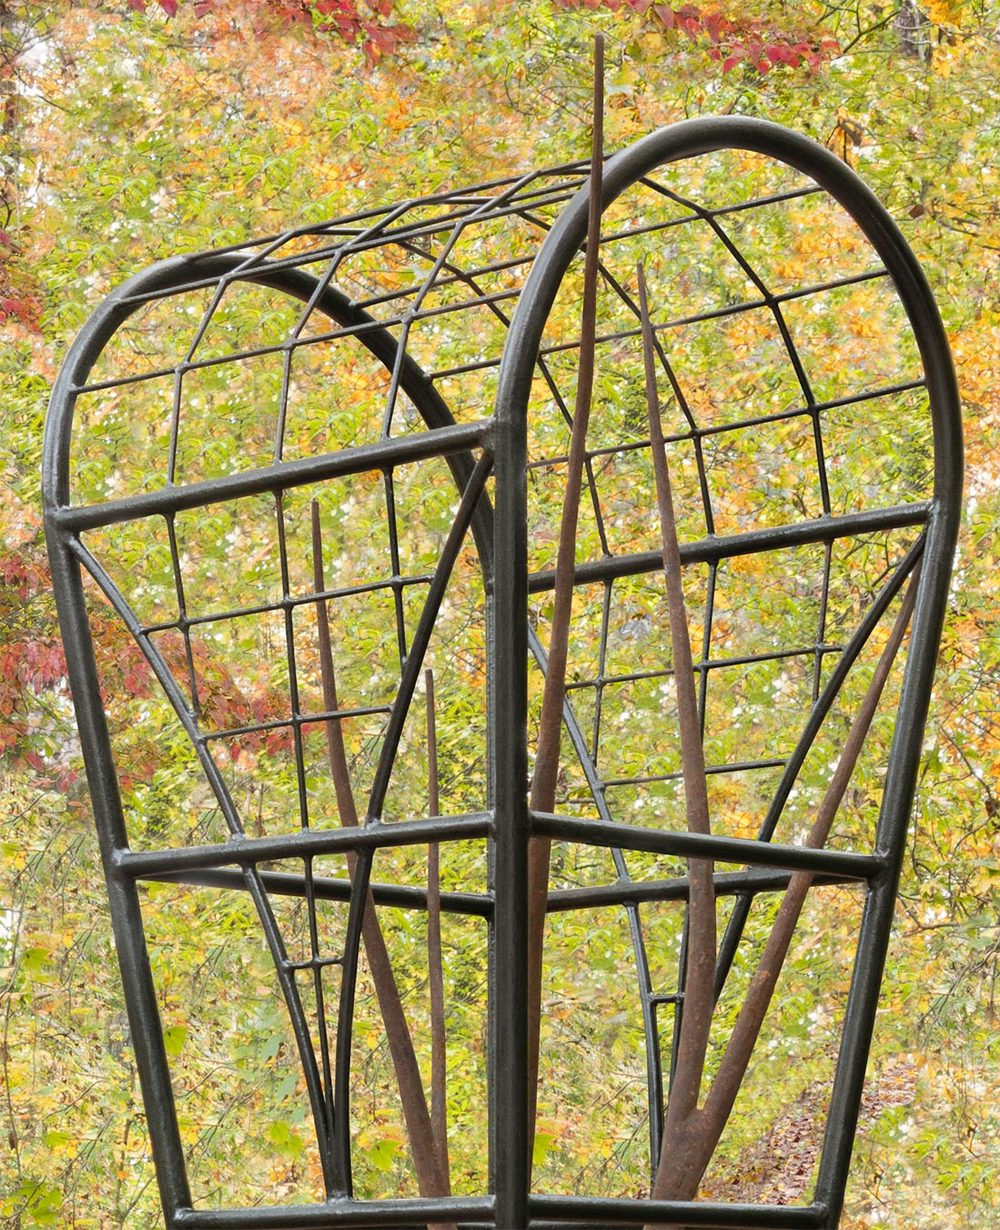 garden_sculpture_detail_1099x1352.jpg